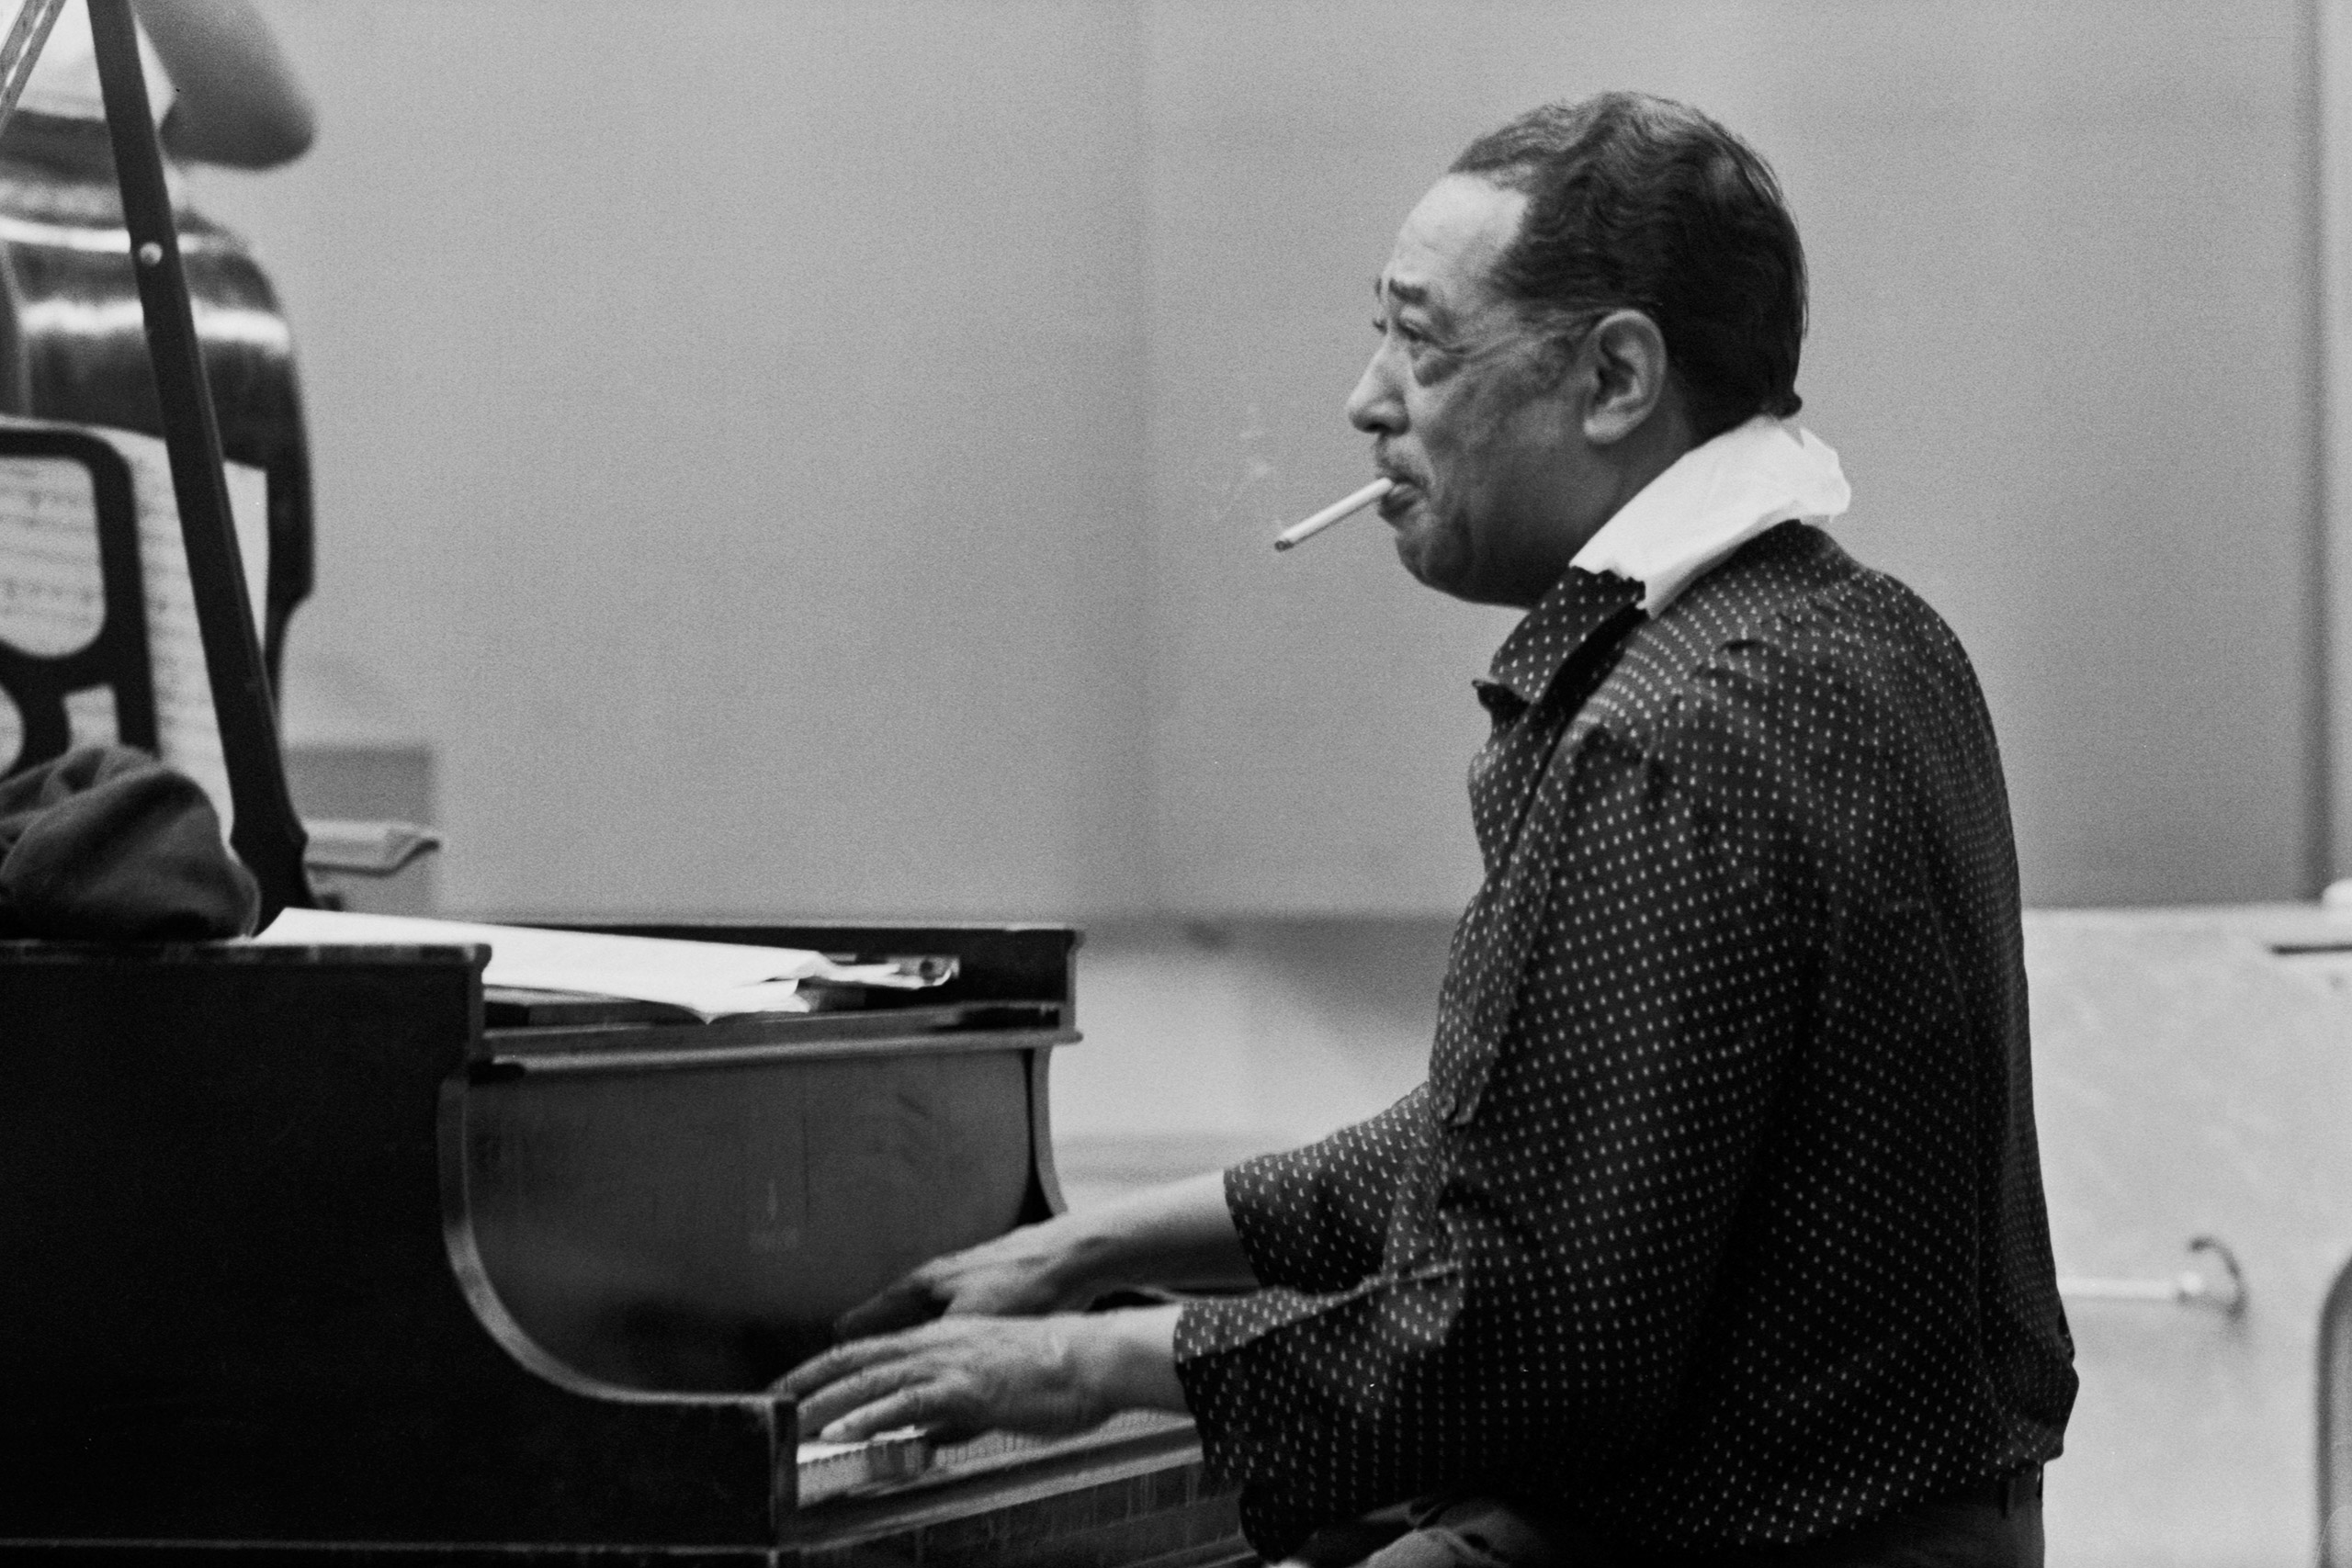 American composer, pianist and bandleader of jazz orchestras, Edward Kennedy  Duke  Ellington, playing piano while smoking a cigarette during a recording session, Chicago,1966.